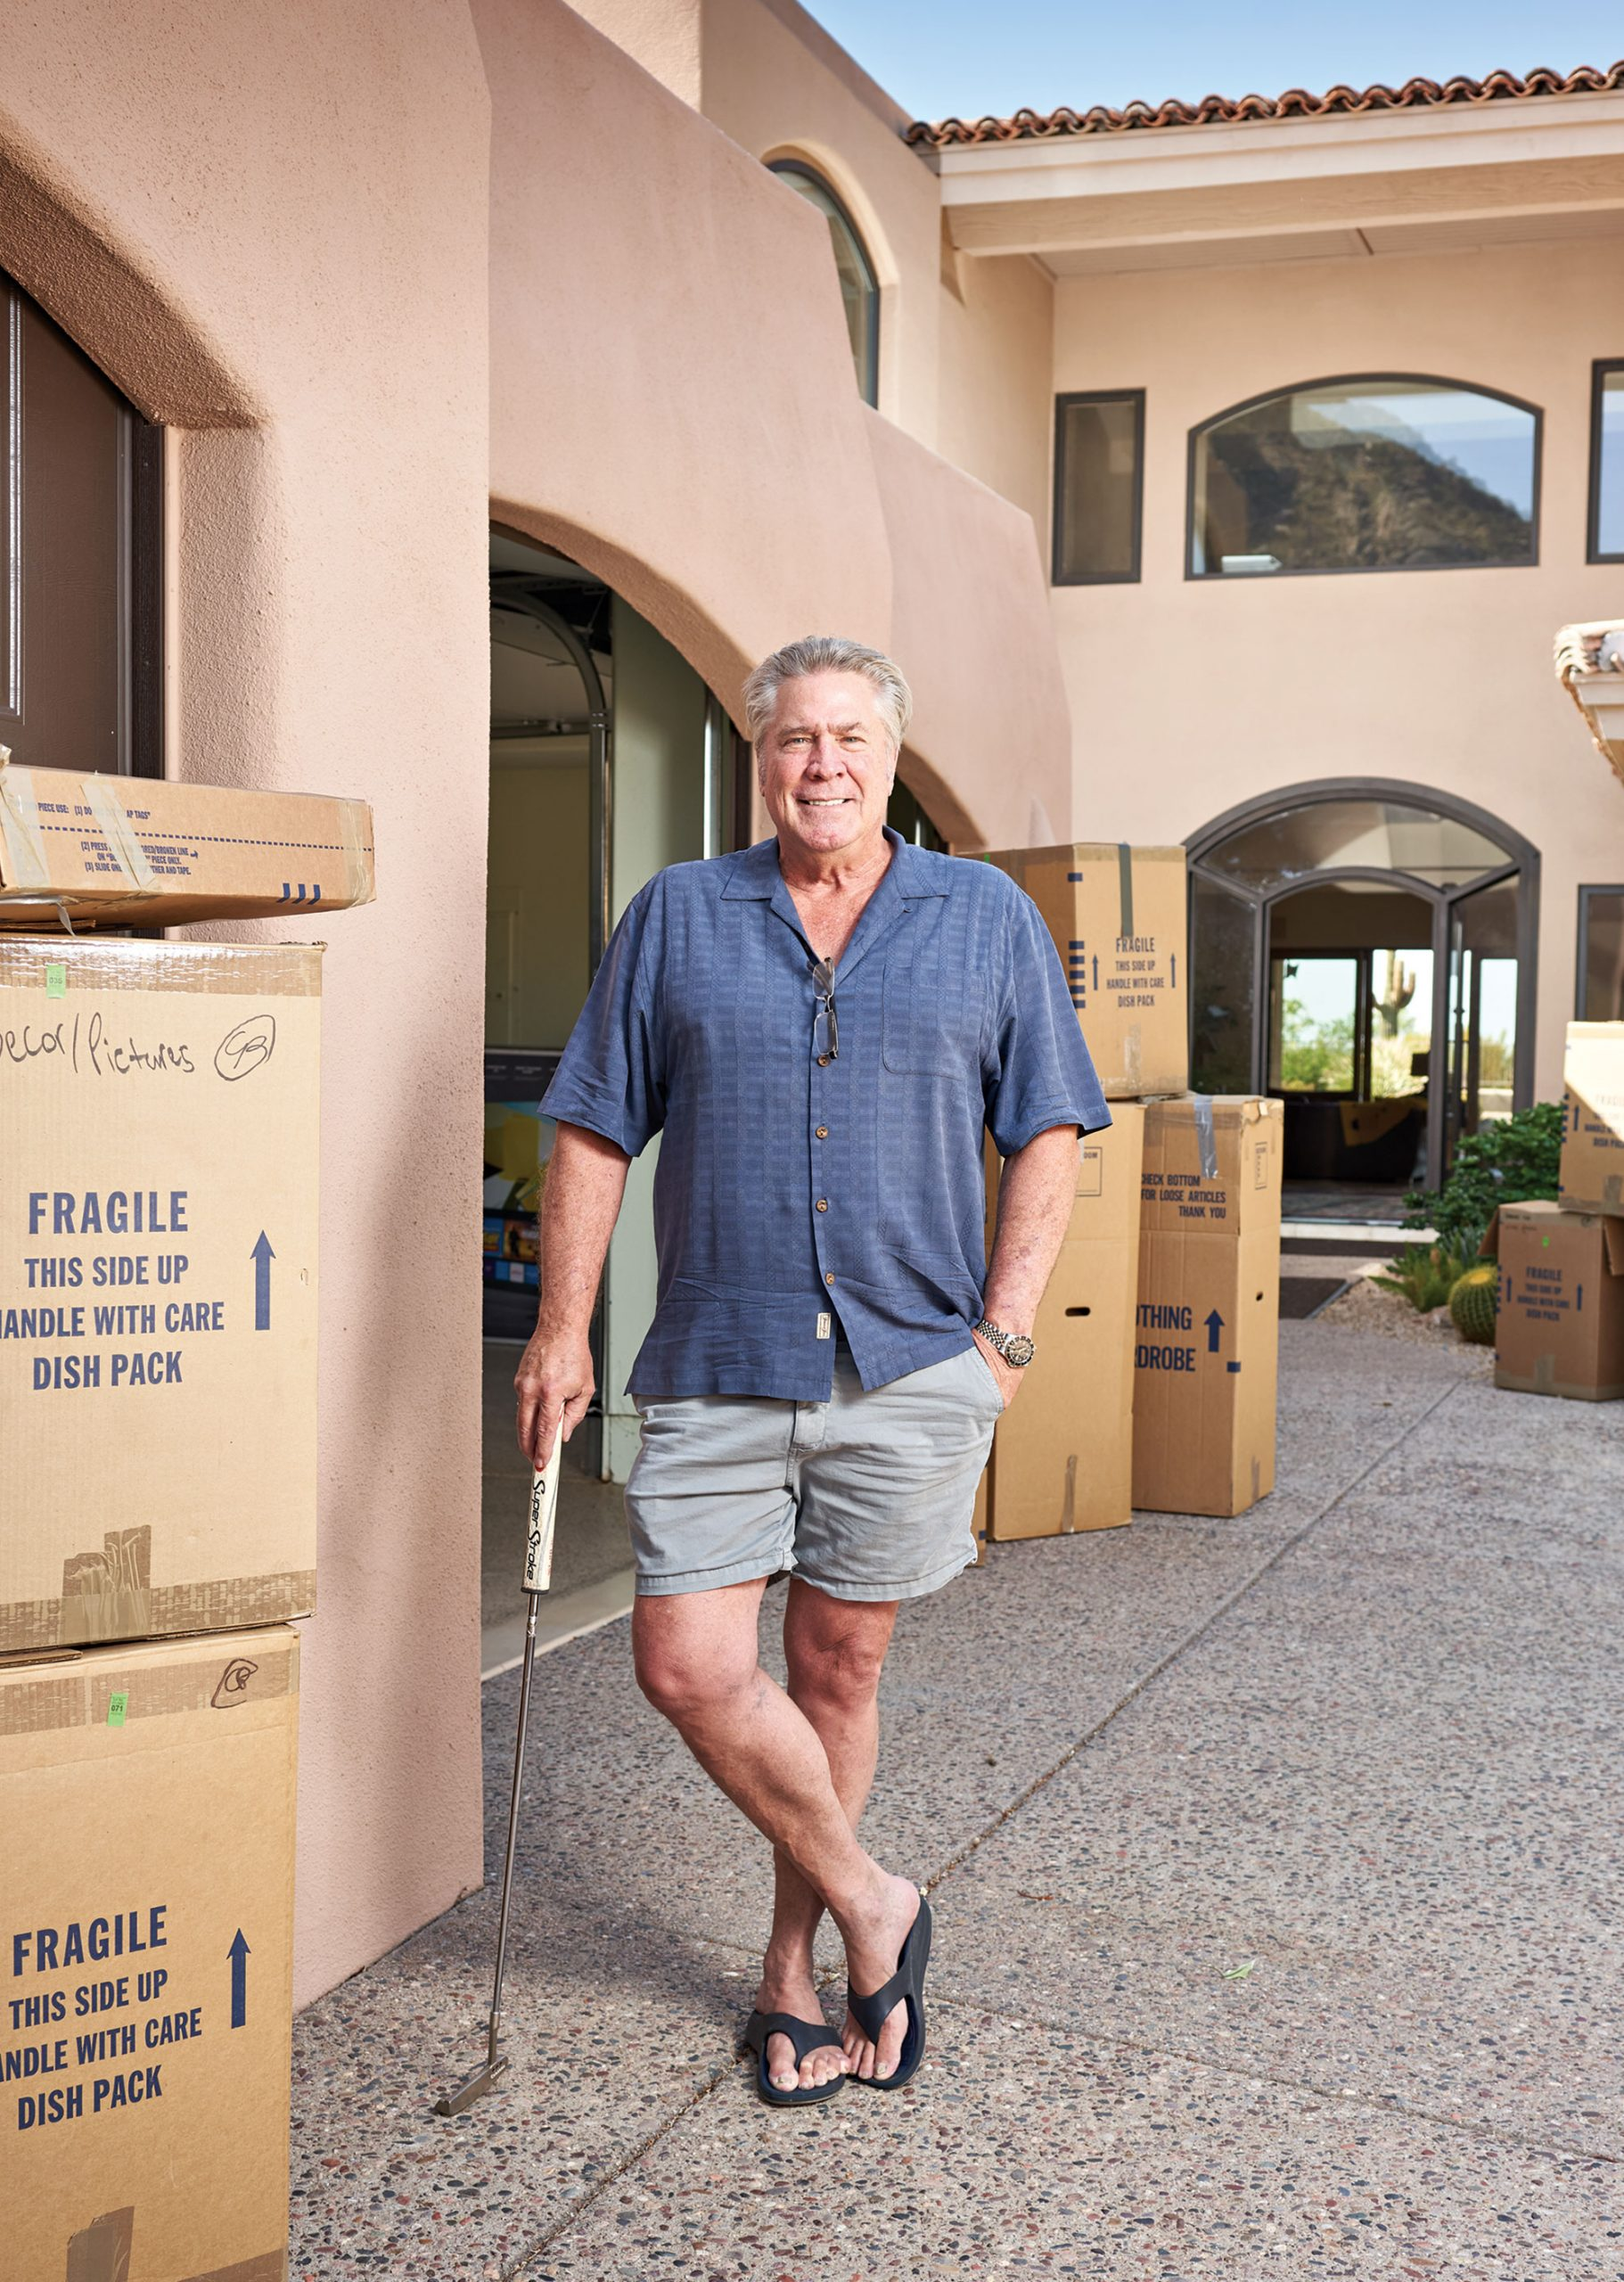 Undeterred by record Valley home prices, developer Kris Eric Pigman fled California this summer for Scottsdale.; Photo by Camerawerks